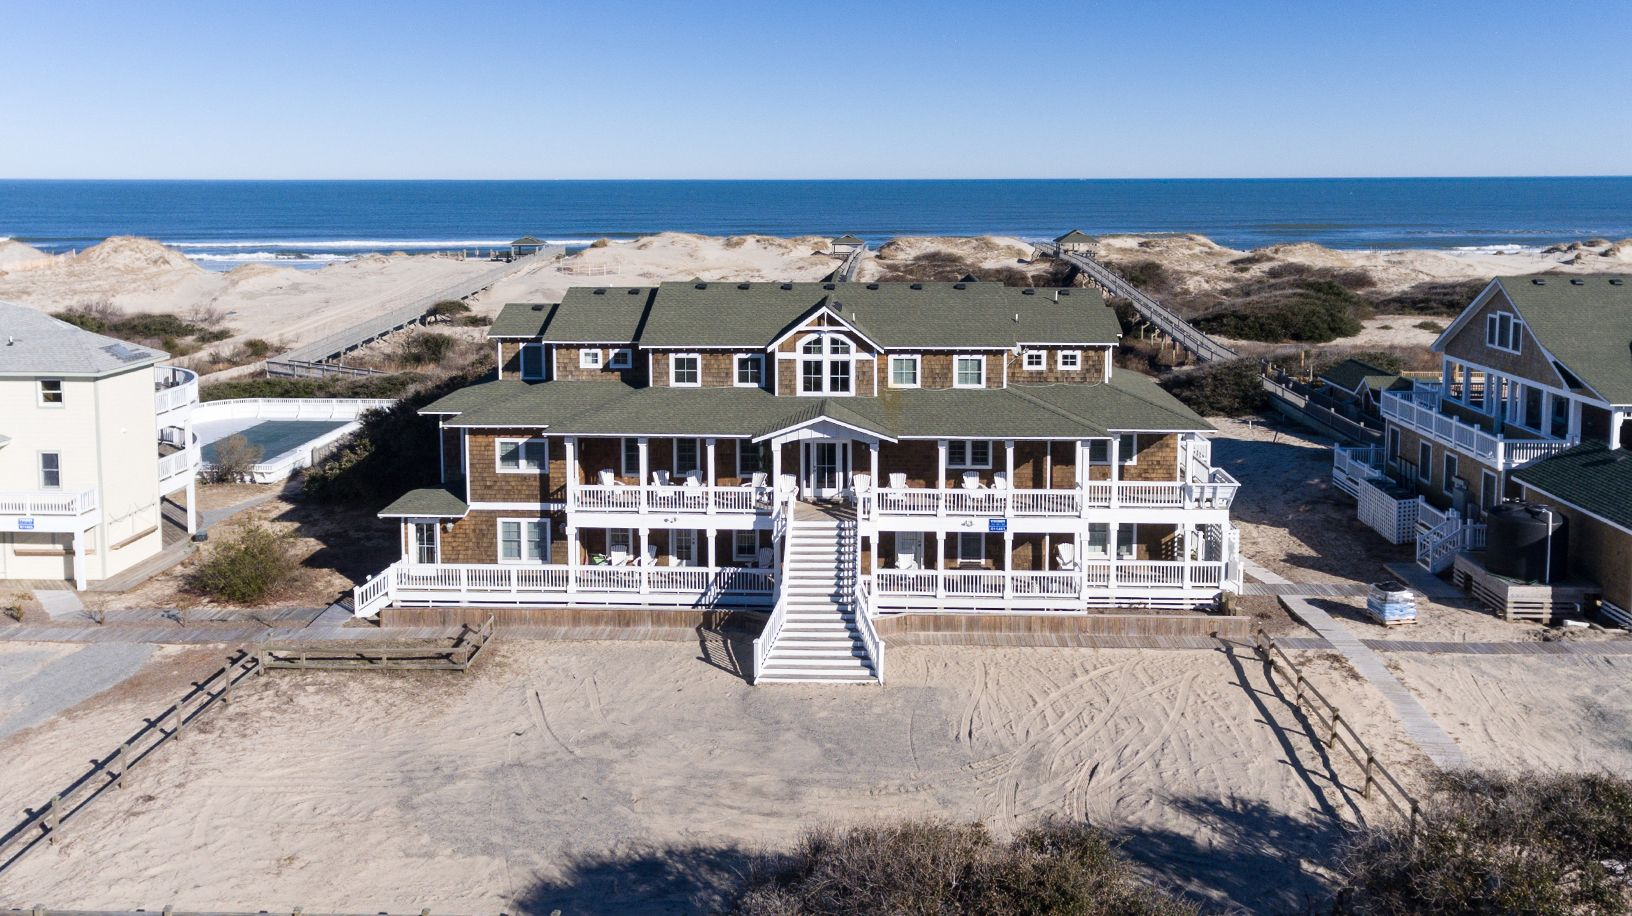 The Hemingway Outer Banks Vacation Oceanfront Vacation Rentals Beach Vacation Rentals